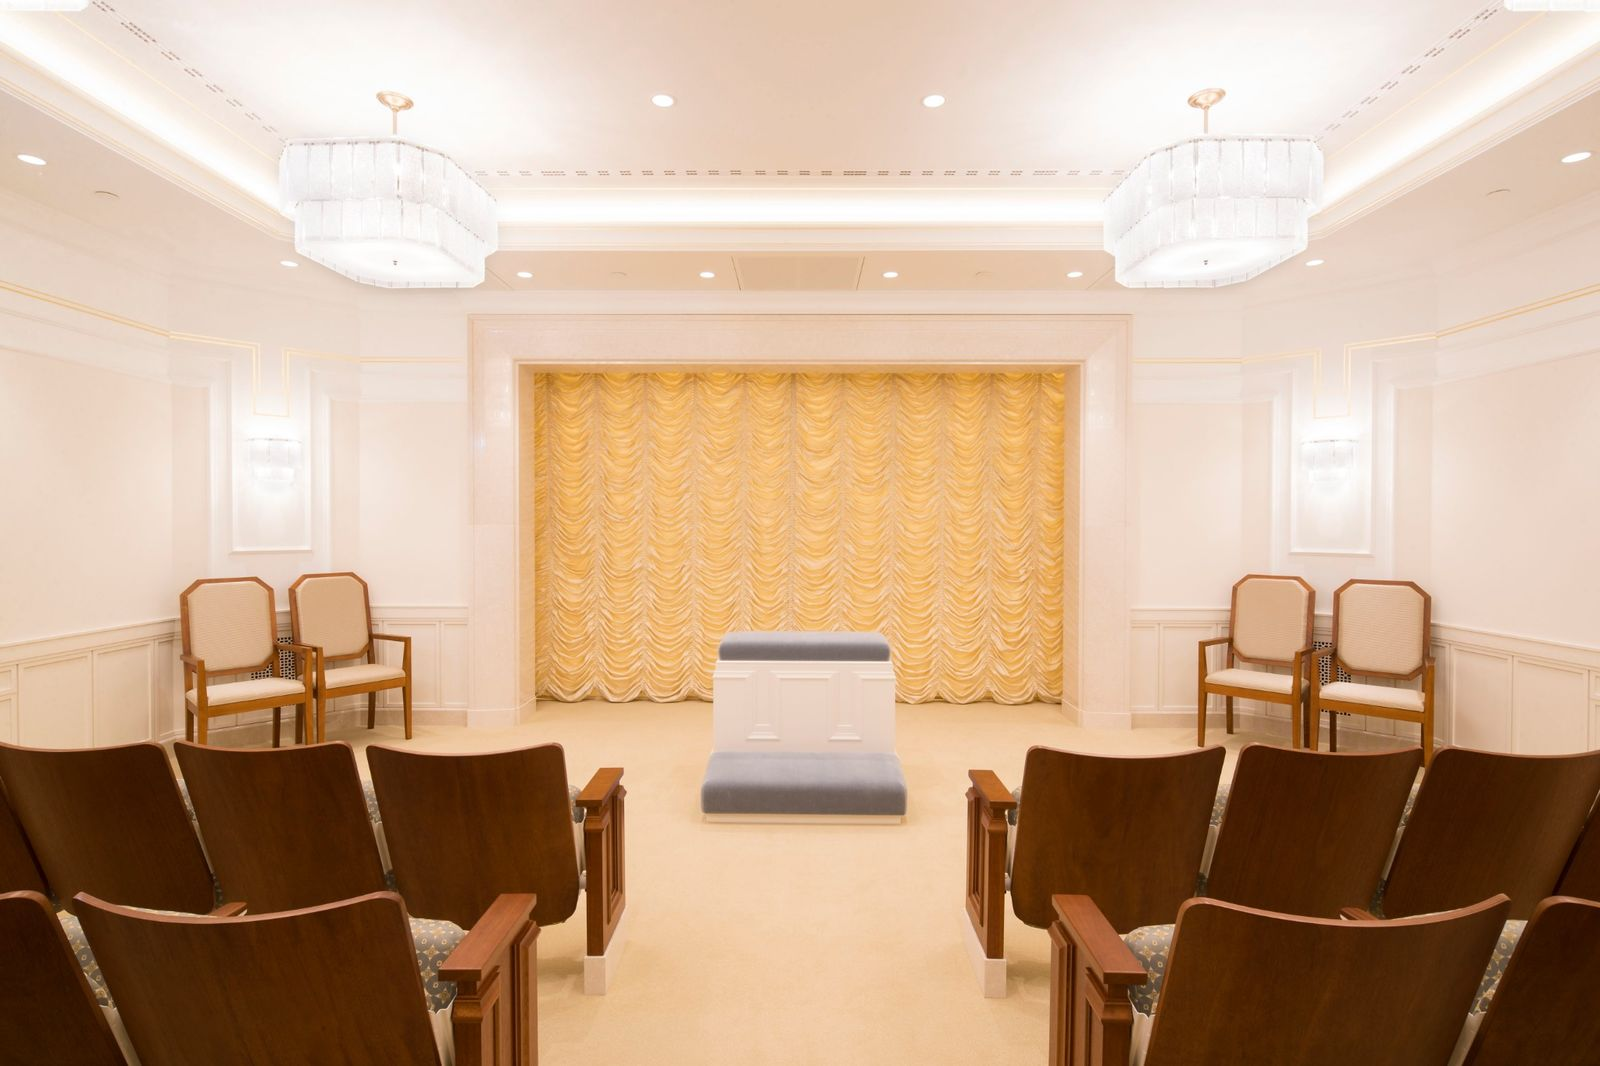 The Church of Jesus Christ of Latter-day Saints has rededicated one of its temples in Germany. (Photo Courtesy of The Church of Jesus Christ of Latter-day Saints)